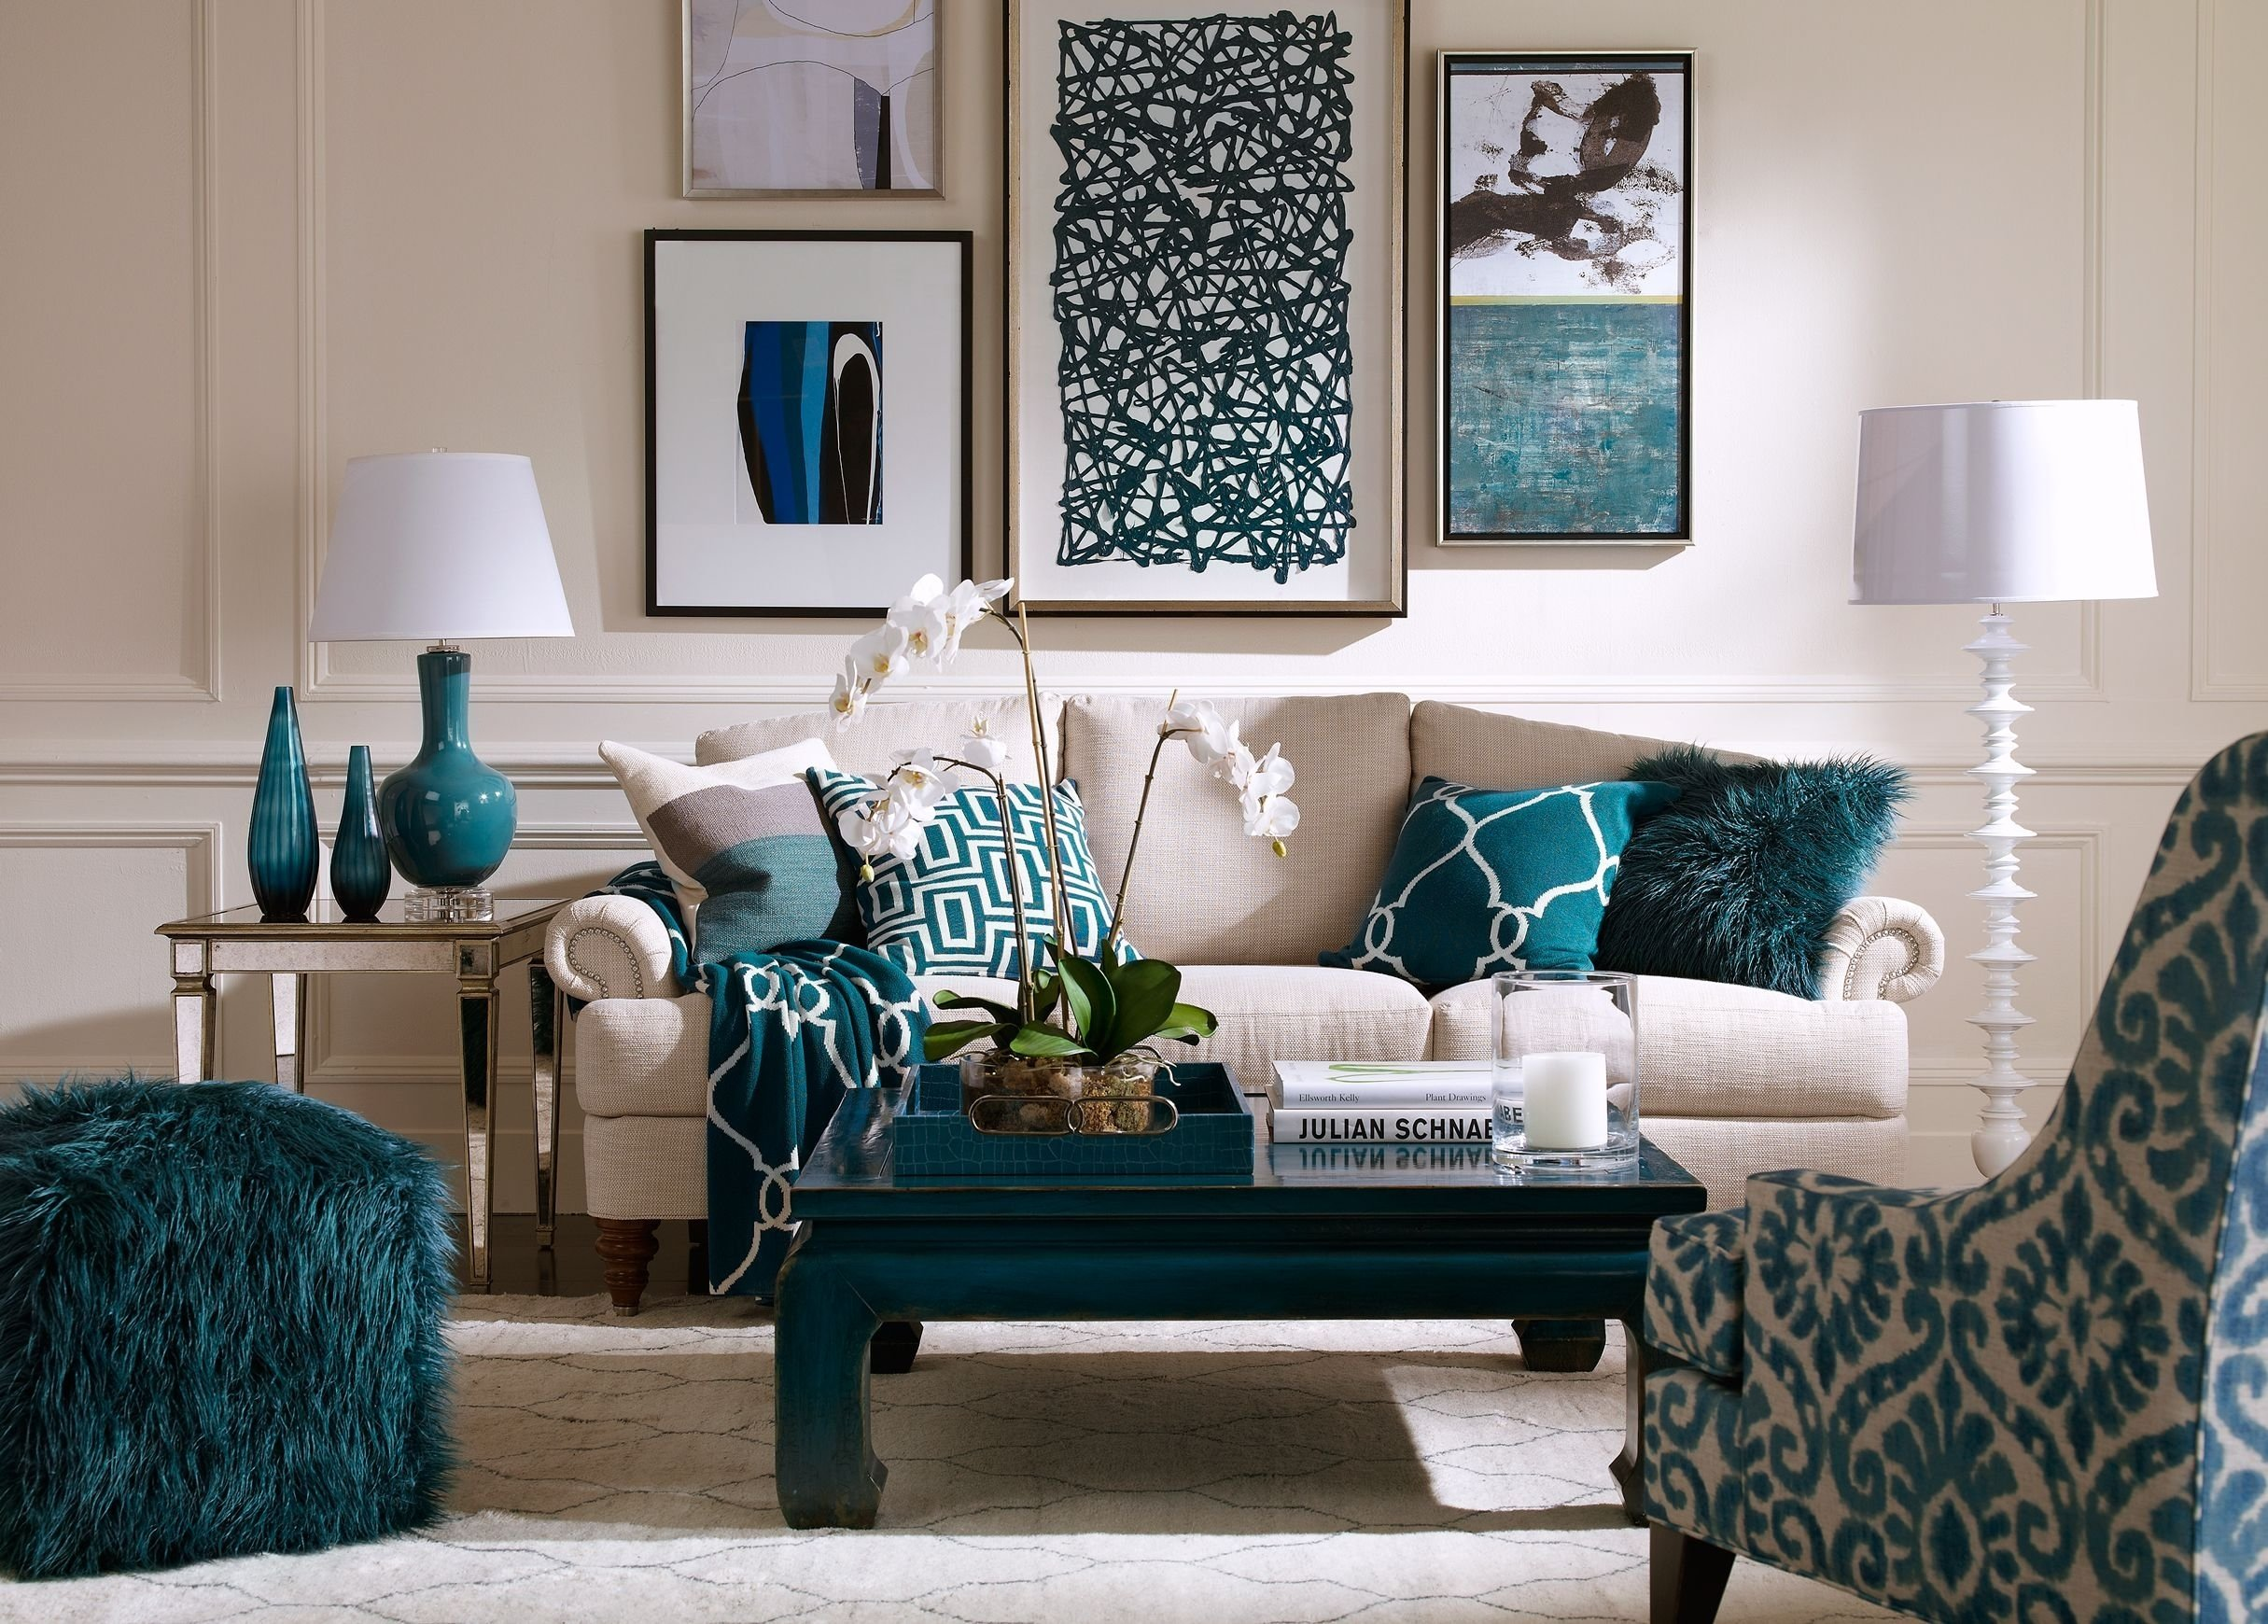 10 Most Popular Decoration Ideas For Living Room 15 best images about turquoise room decorations living rooms 1 2021